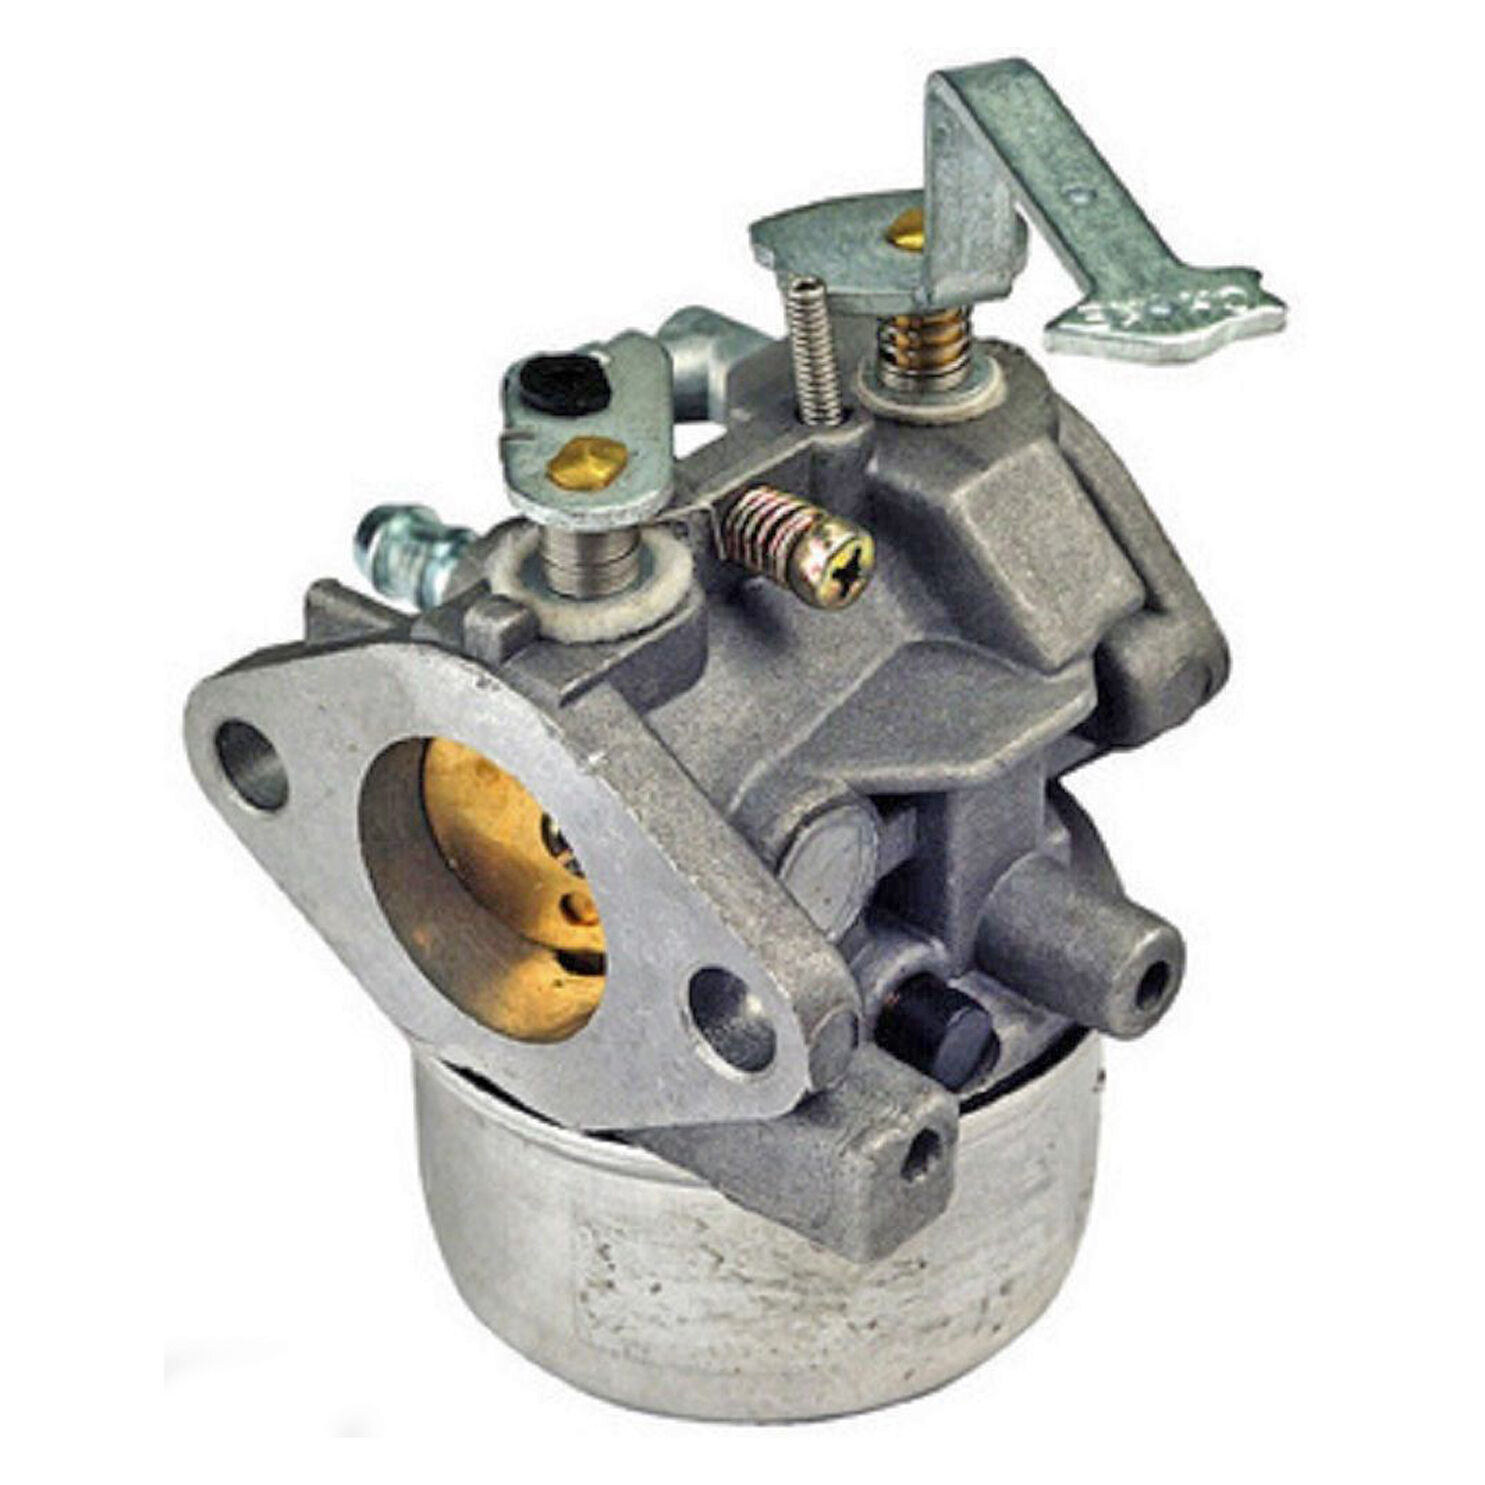 Tecumseh Carburetor 640260a 640260b Ebay Diagram Parts List For Model H6075506n Tecumsehparts All Norton Secured Powered By Verisign